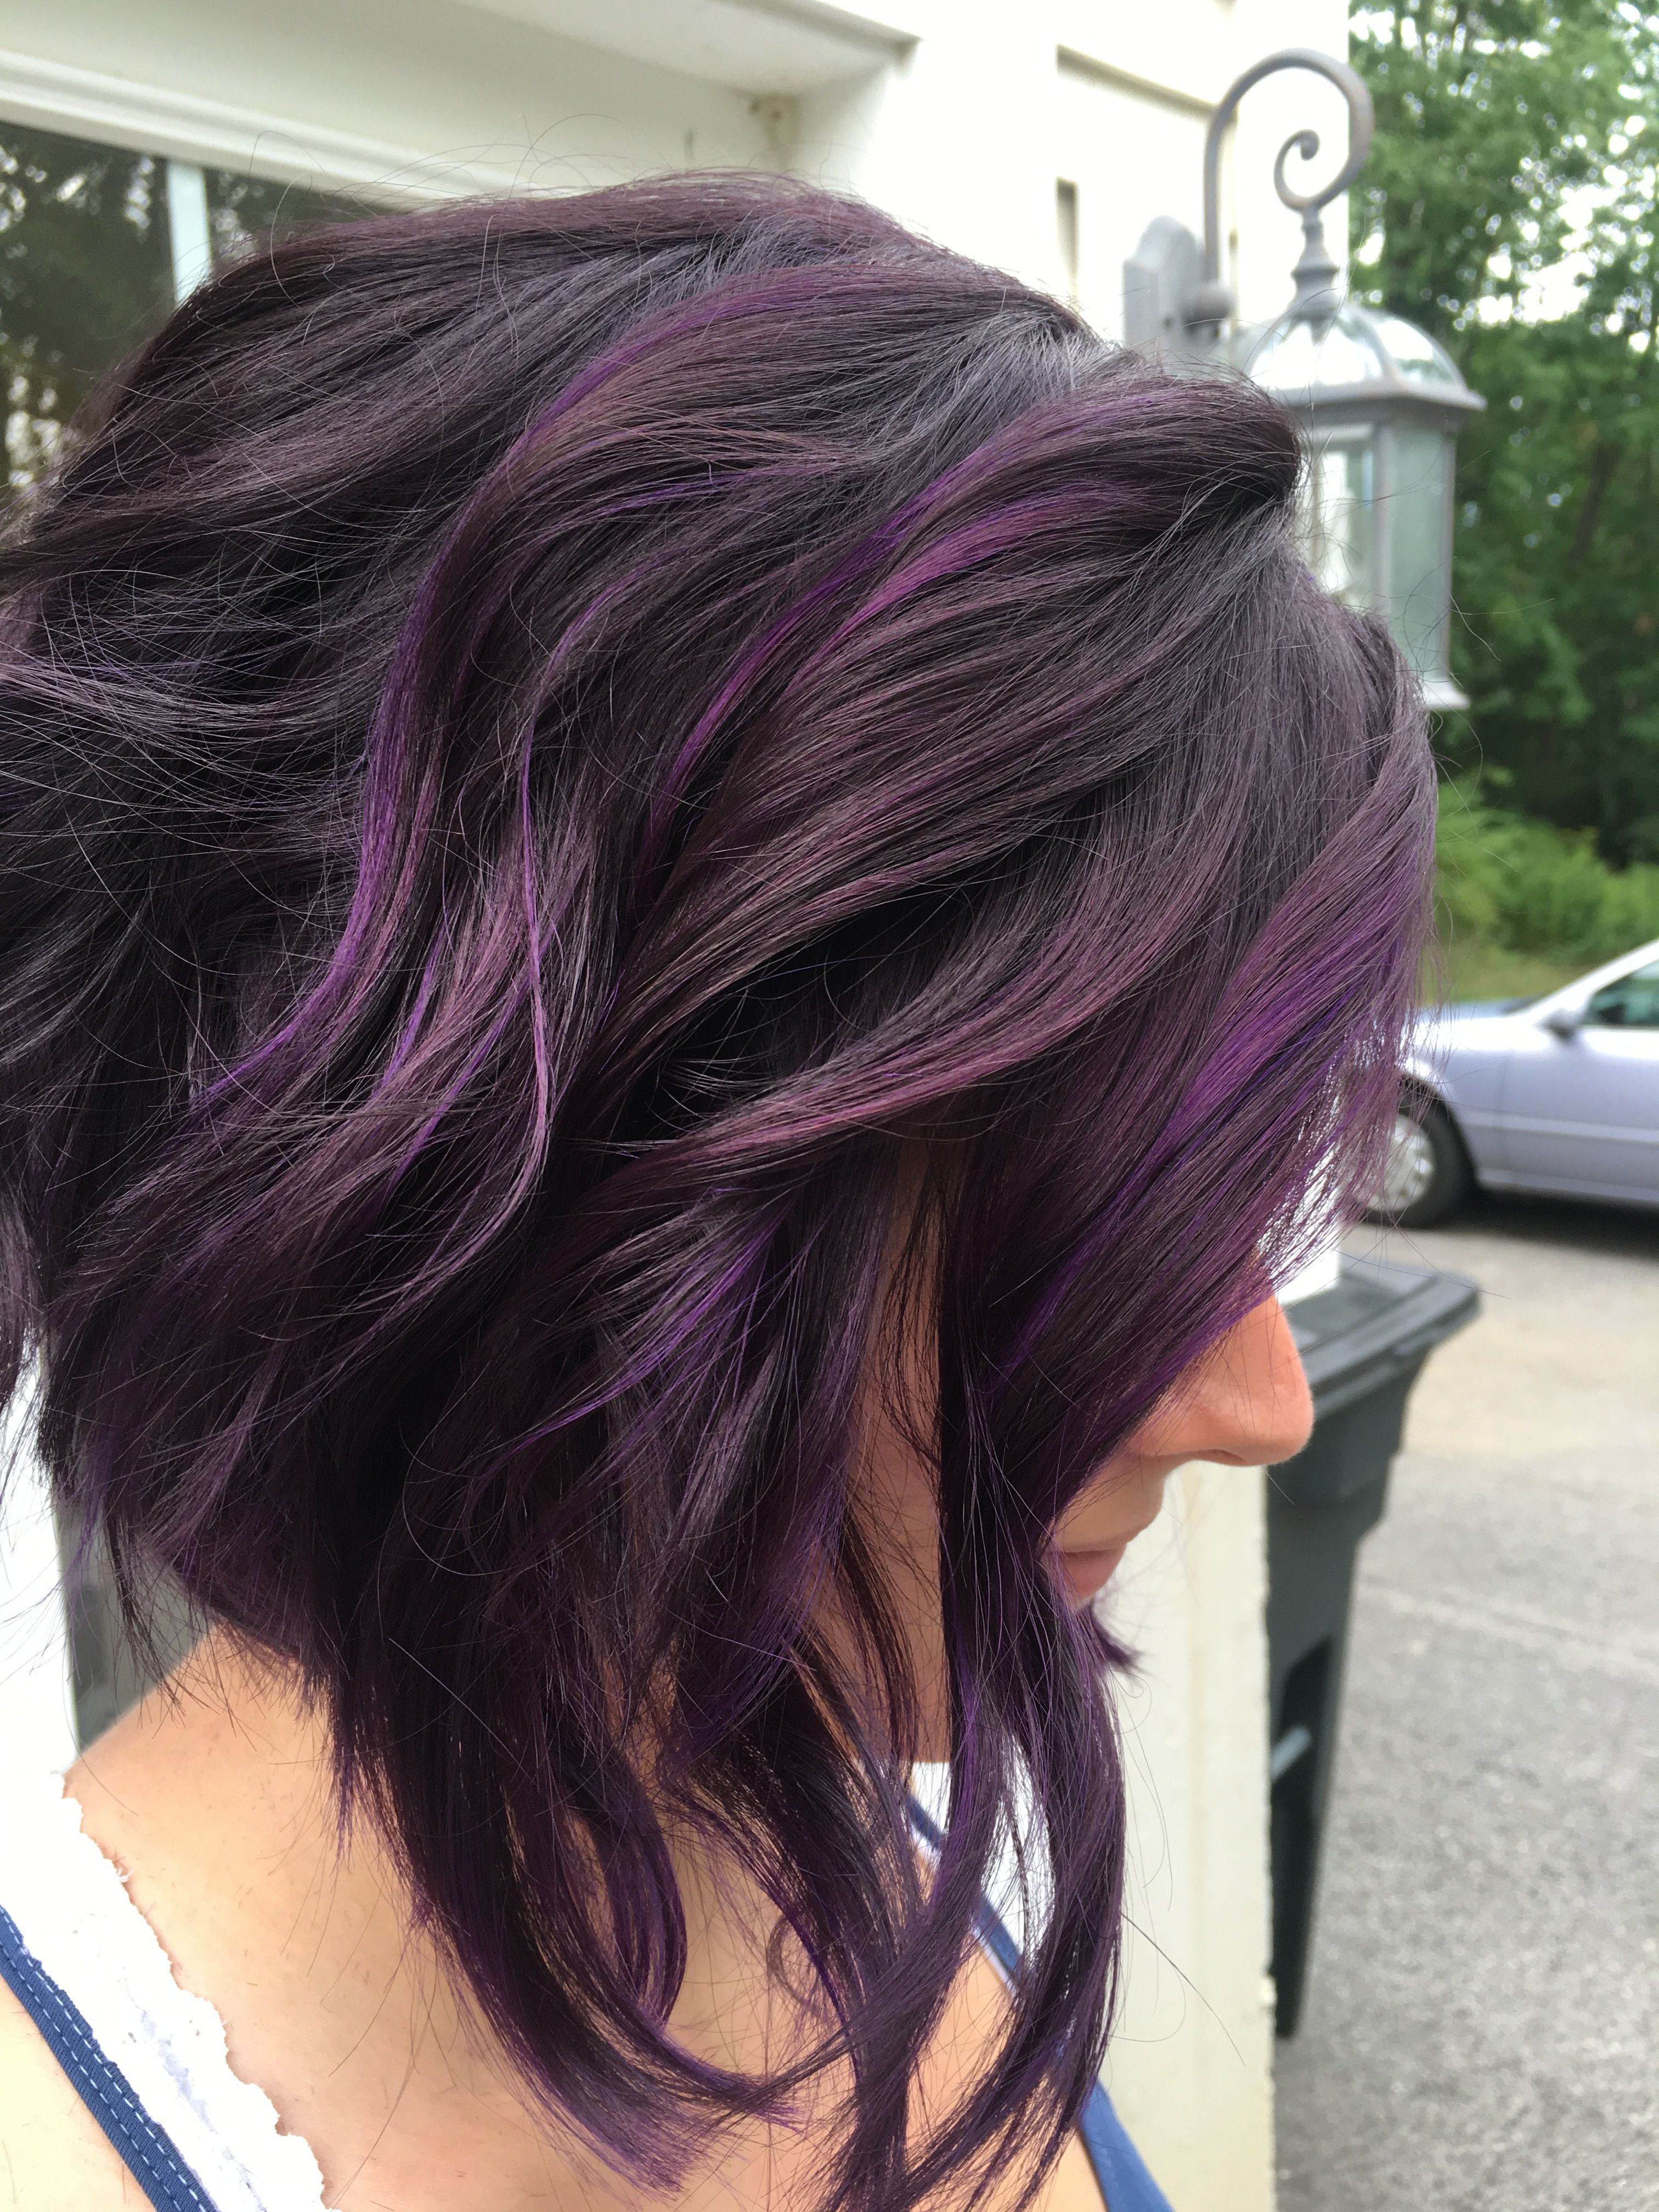 415476074ad Pravana violet and wild orchid